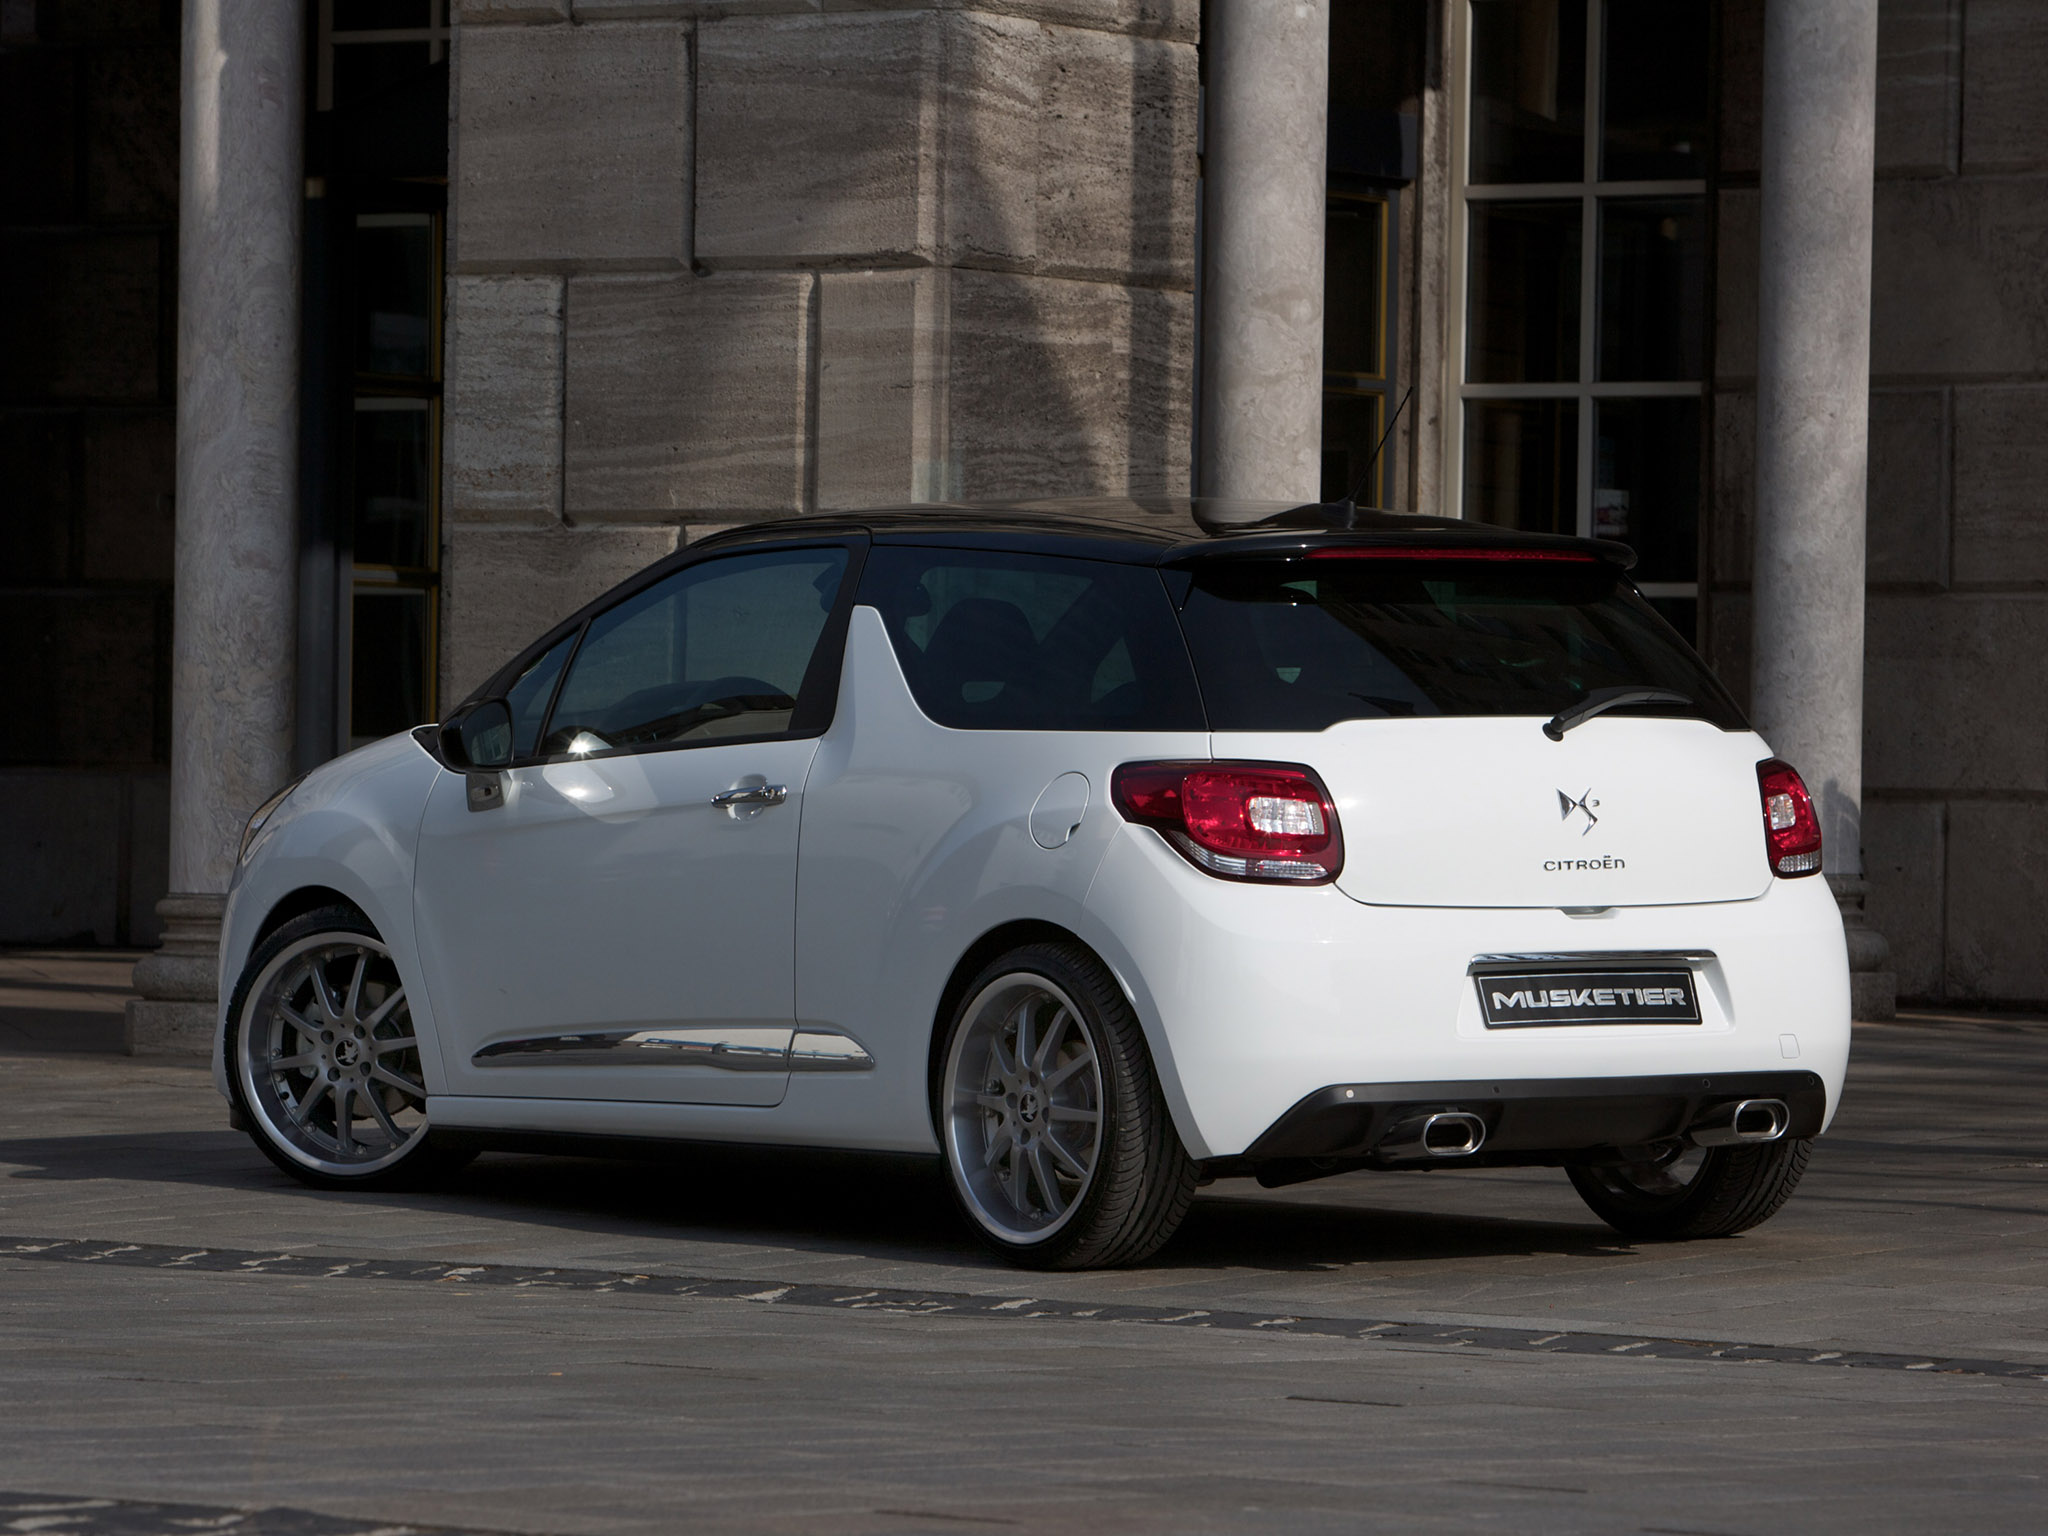 musketier citroen ds3 2010 musketier citroen ds3 2010 photo 22 car in pictures car photo gallery. Black Bedroom Furniture Sets. Home Design Ideas